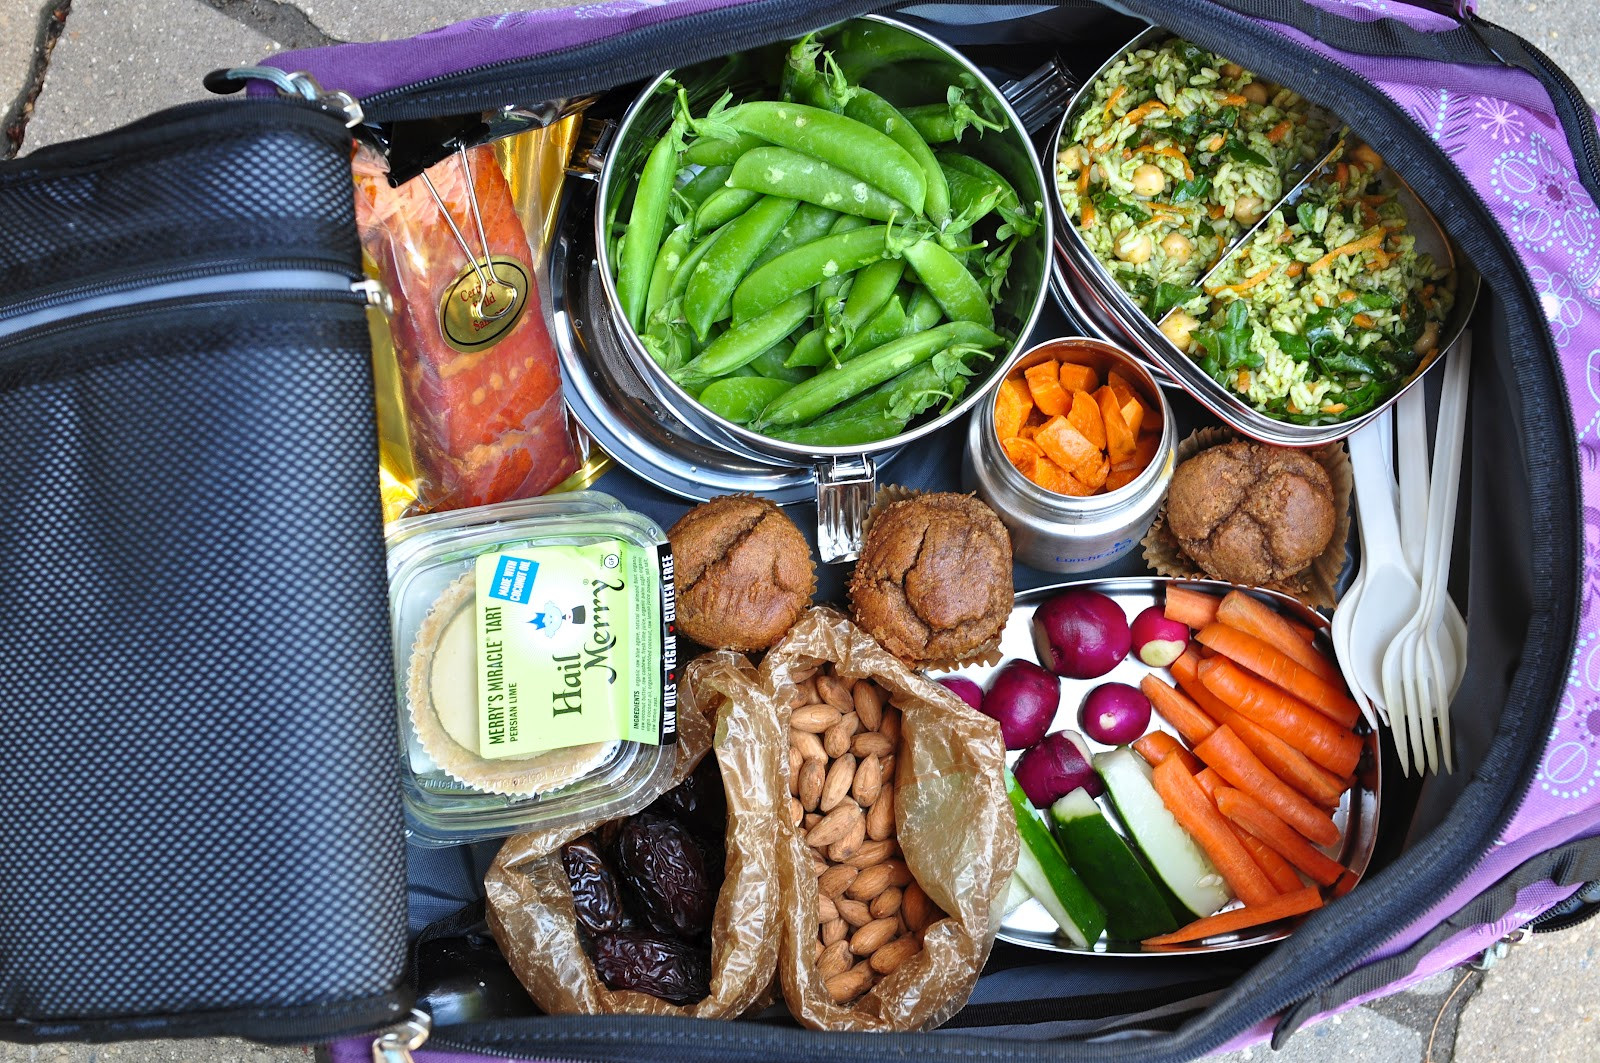 Healthy Plane Snacks  Nourishing Meals Packing Healthy Food for Air Travel